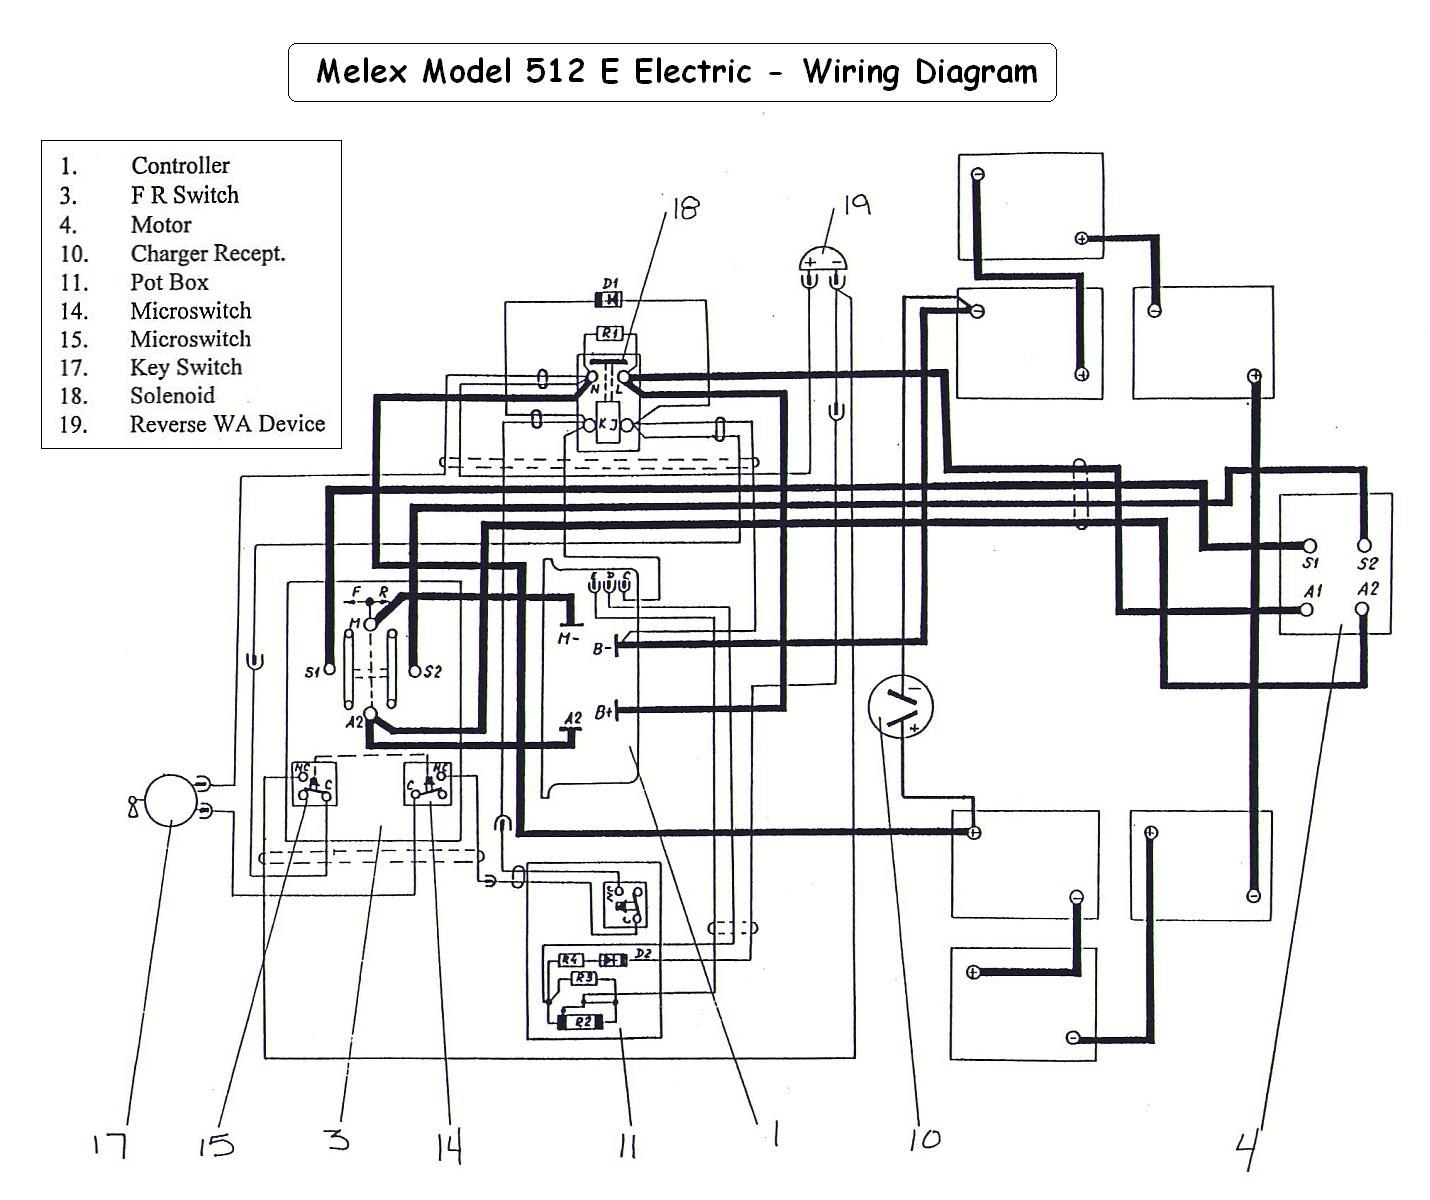 Melex512E_wiring_diagram vintagegolfcartparts com westinghouse golf cart wiring diagram at webbmarketing.co